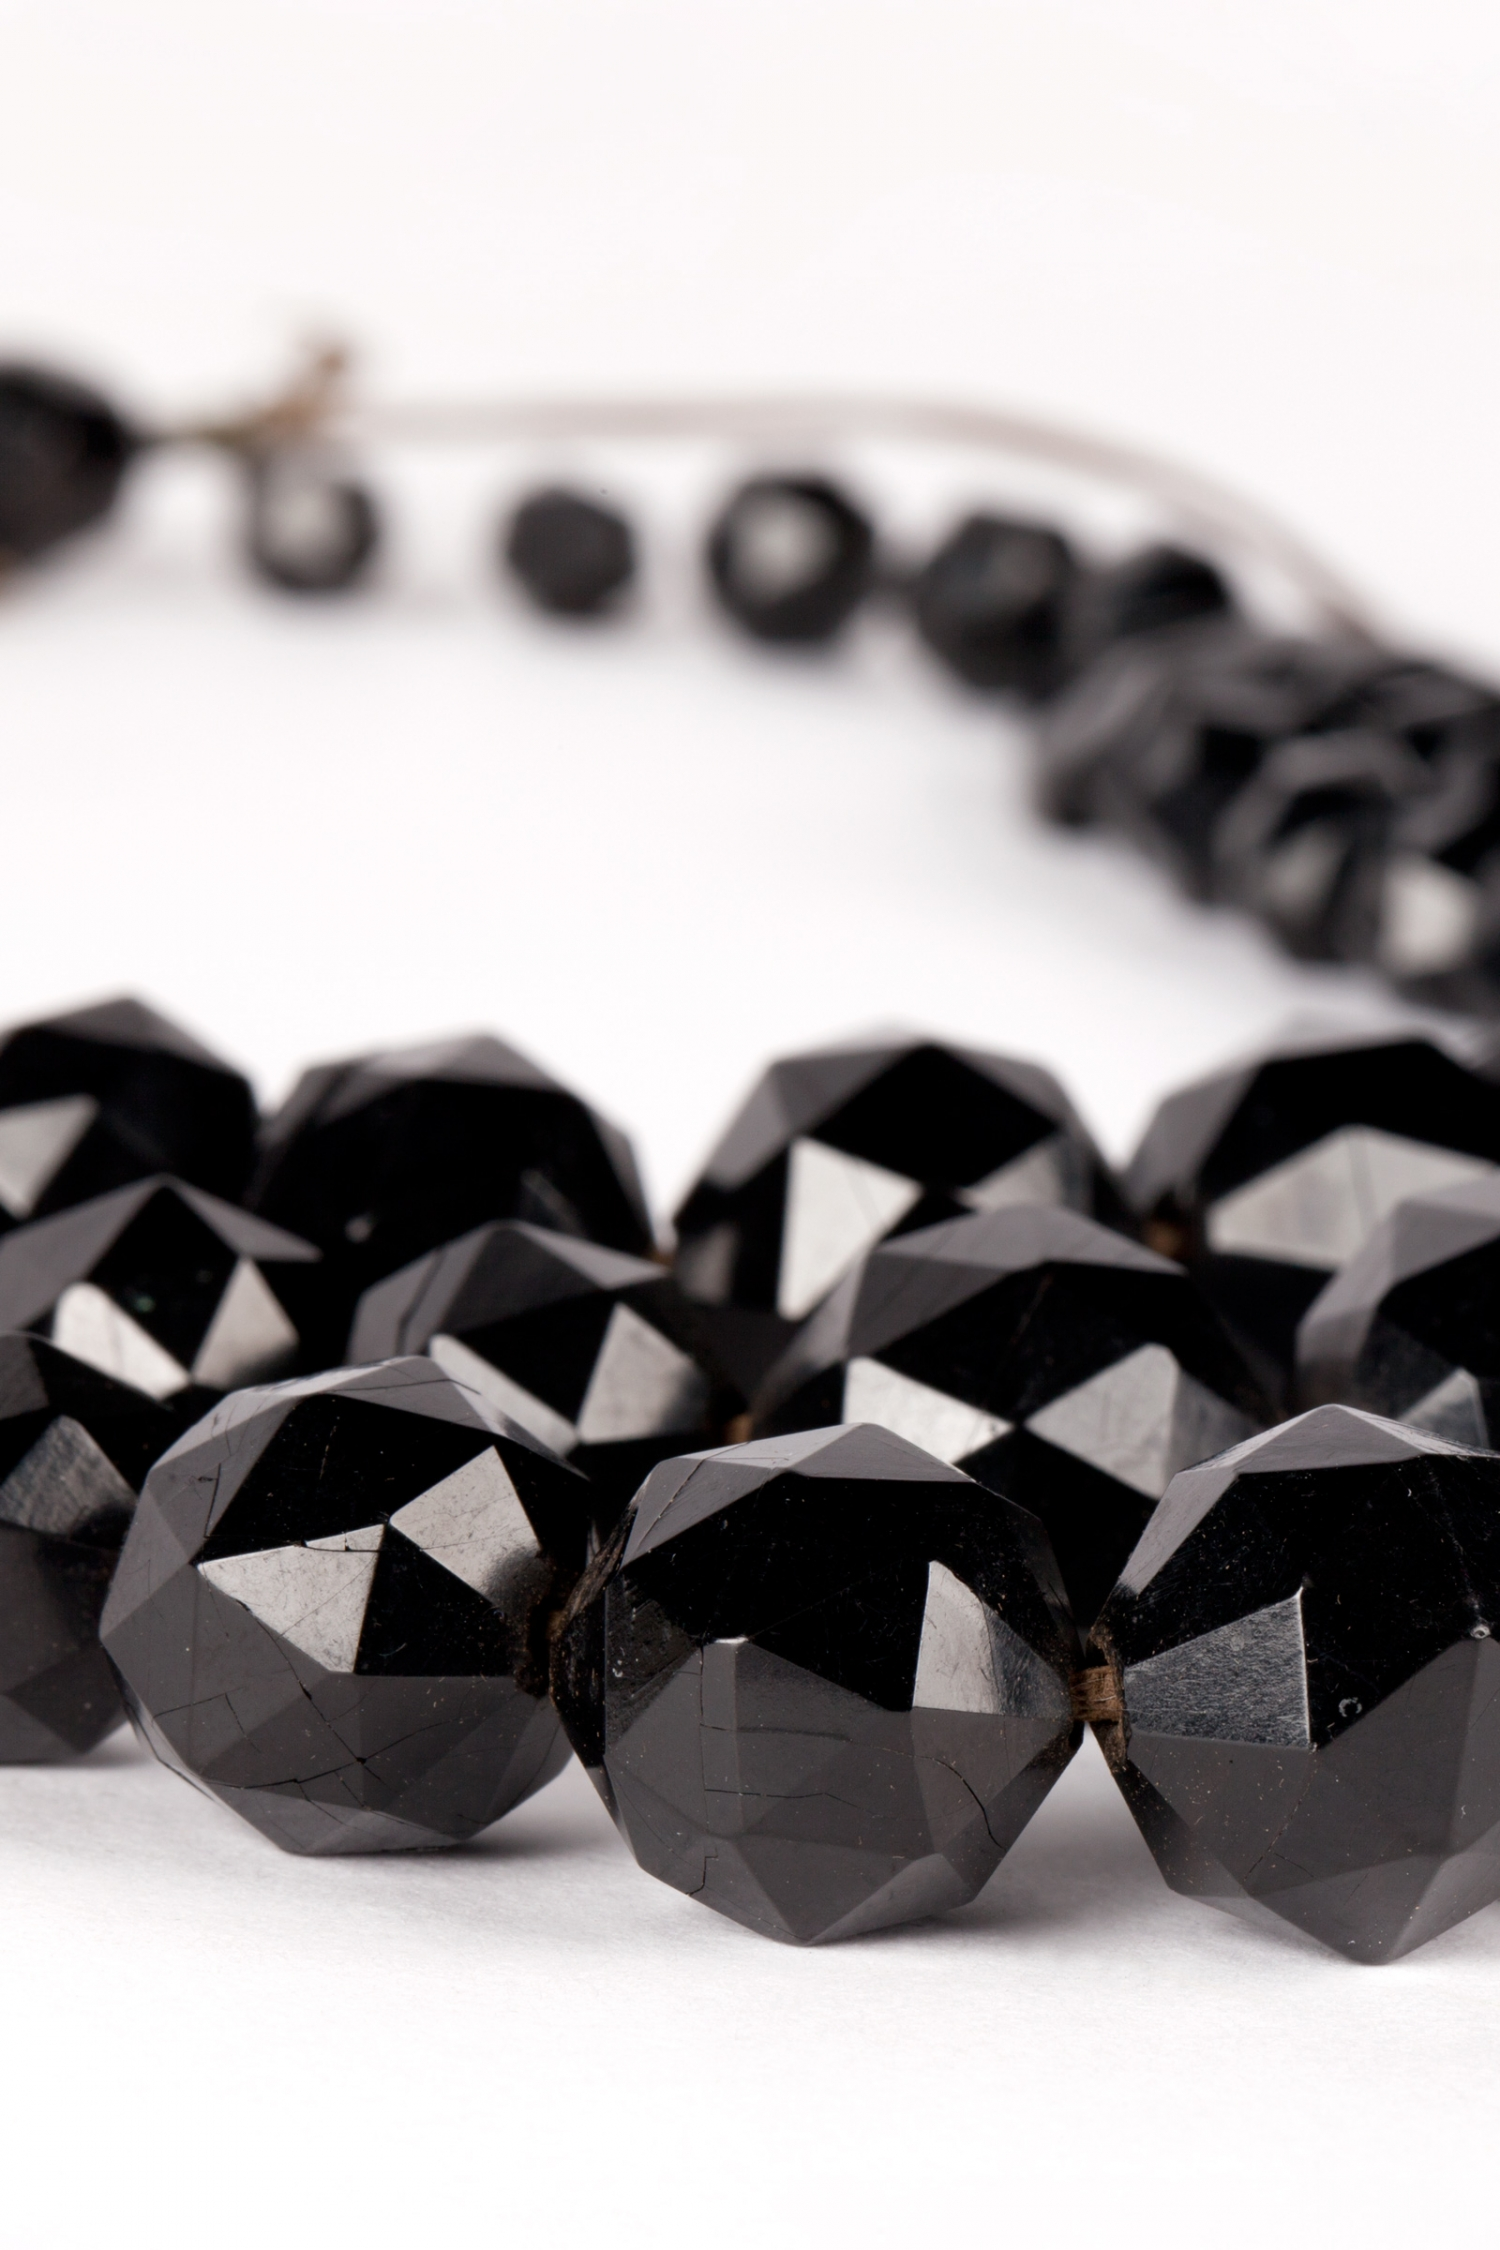 Detail view of a jet necklace which consists of a single strand of faceted jet beads from which are hung three strands of graduated beads attached through faceted half-moon shaped beads